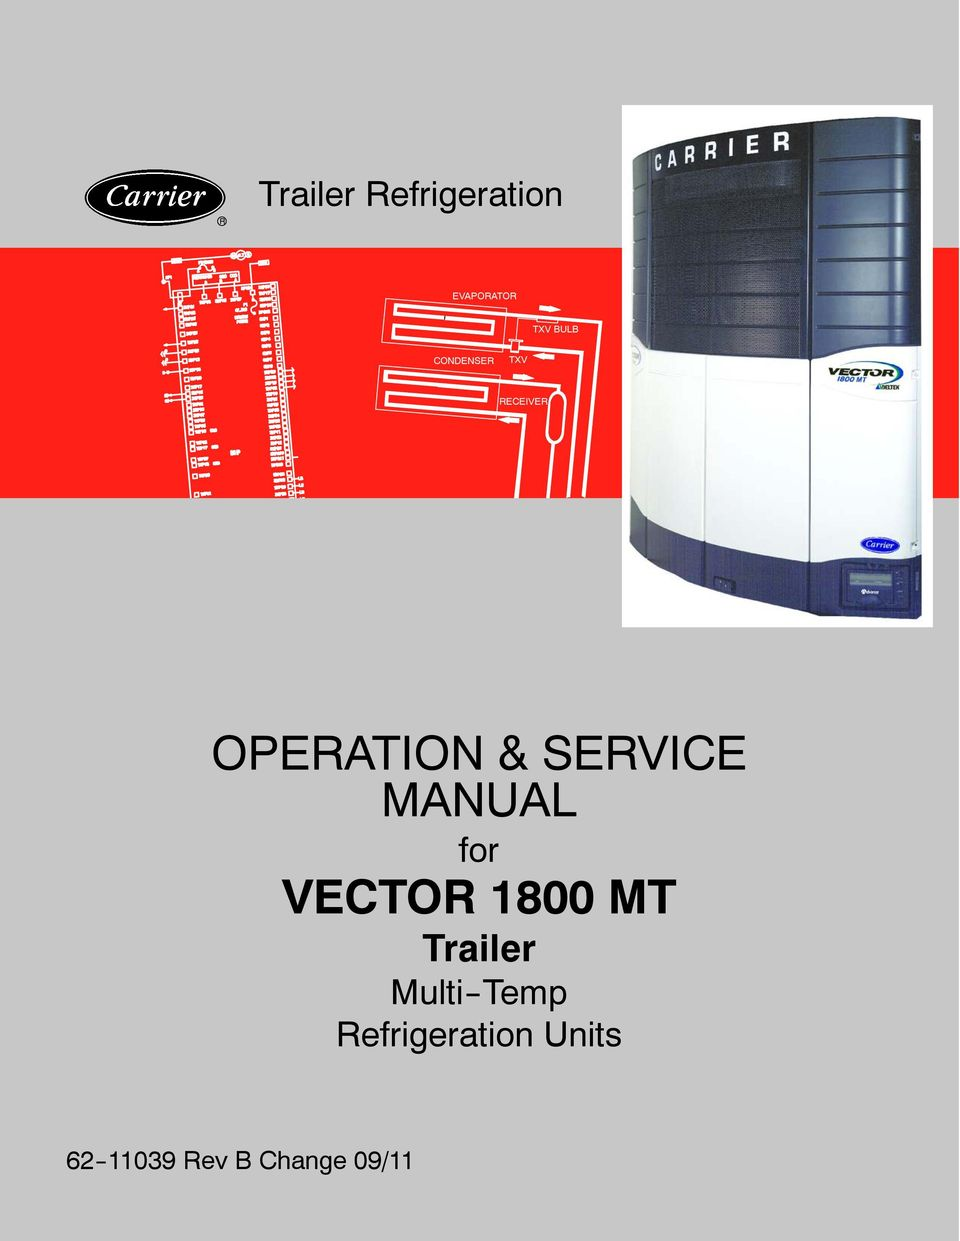 operation service manual for vector 1800 mt trailer multi temp rh docplayer net Carrier Vector 1550 Carrier Vector 1550